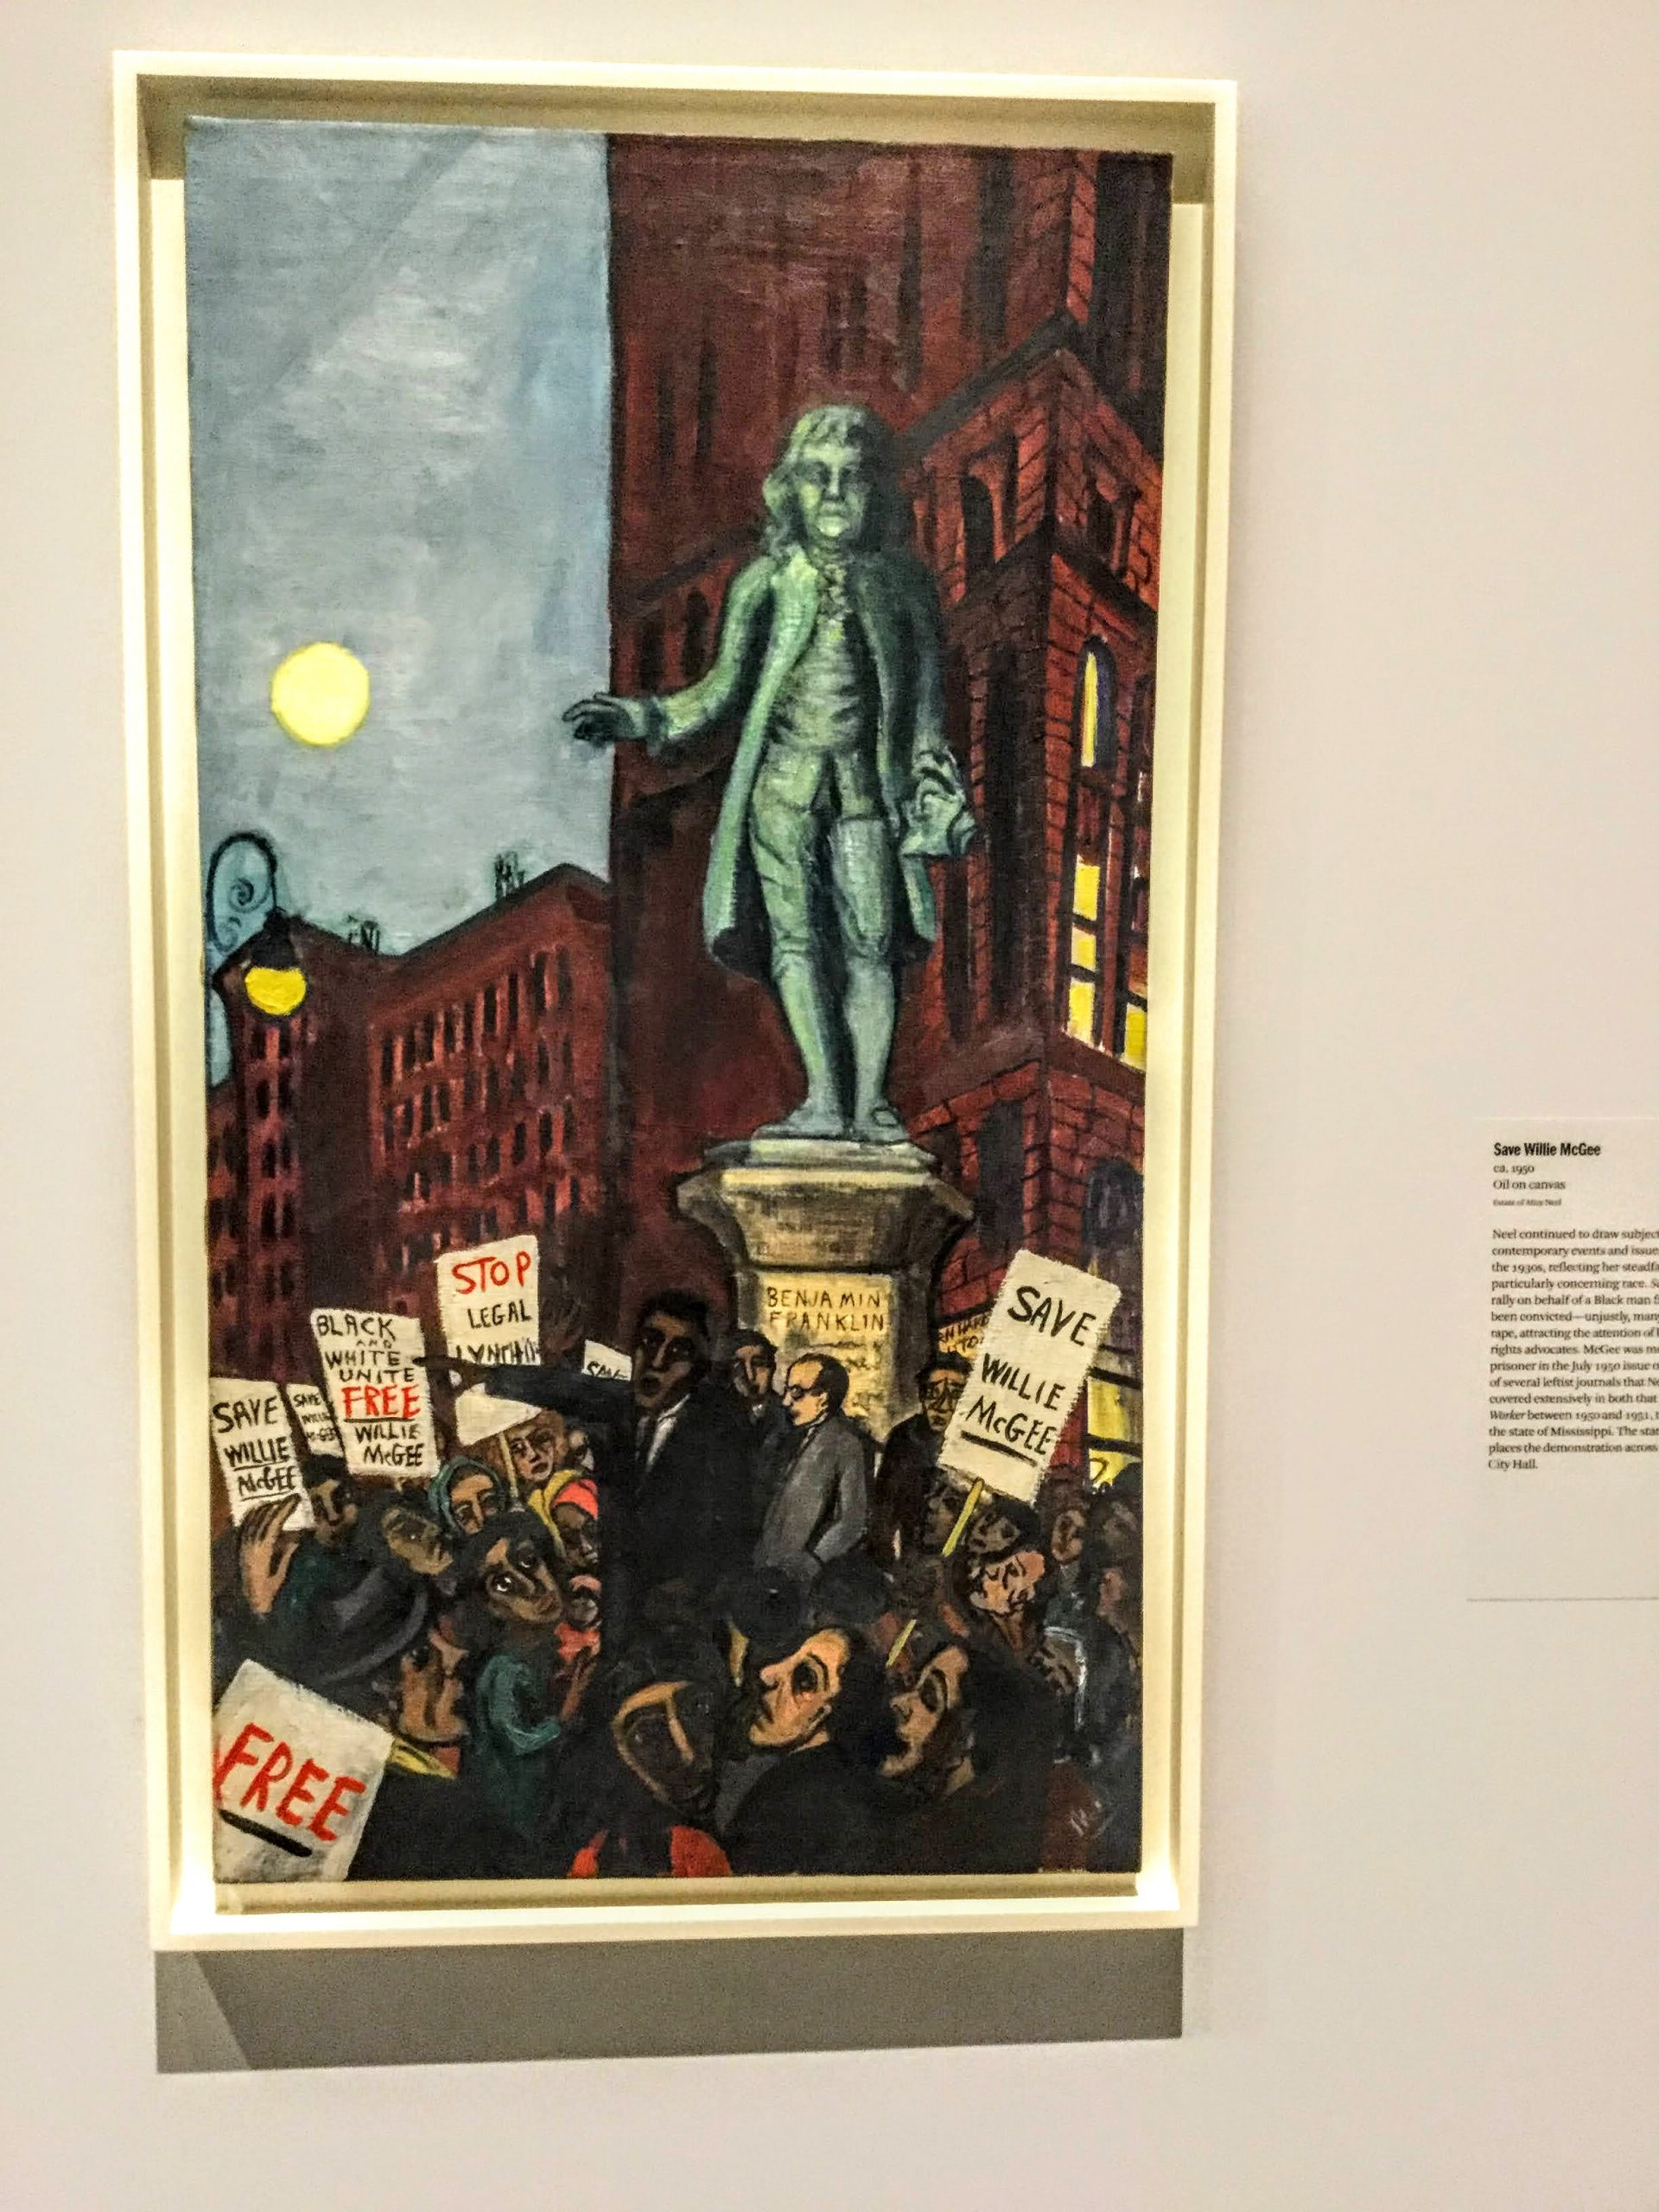 Save Willie McGee by Alice Neel